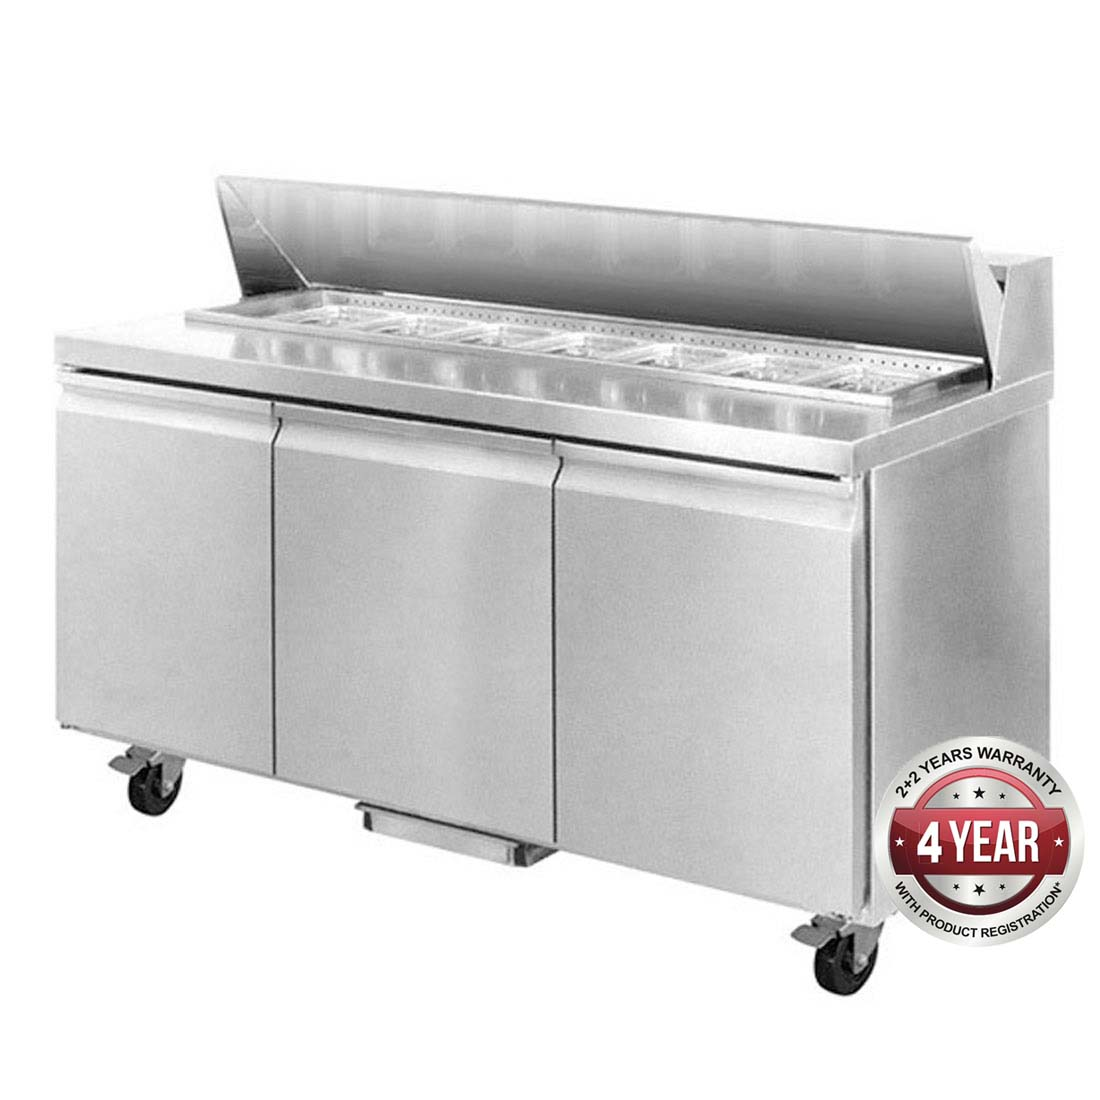 SLB150 three door Sandwich Bar